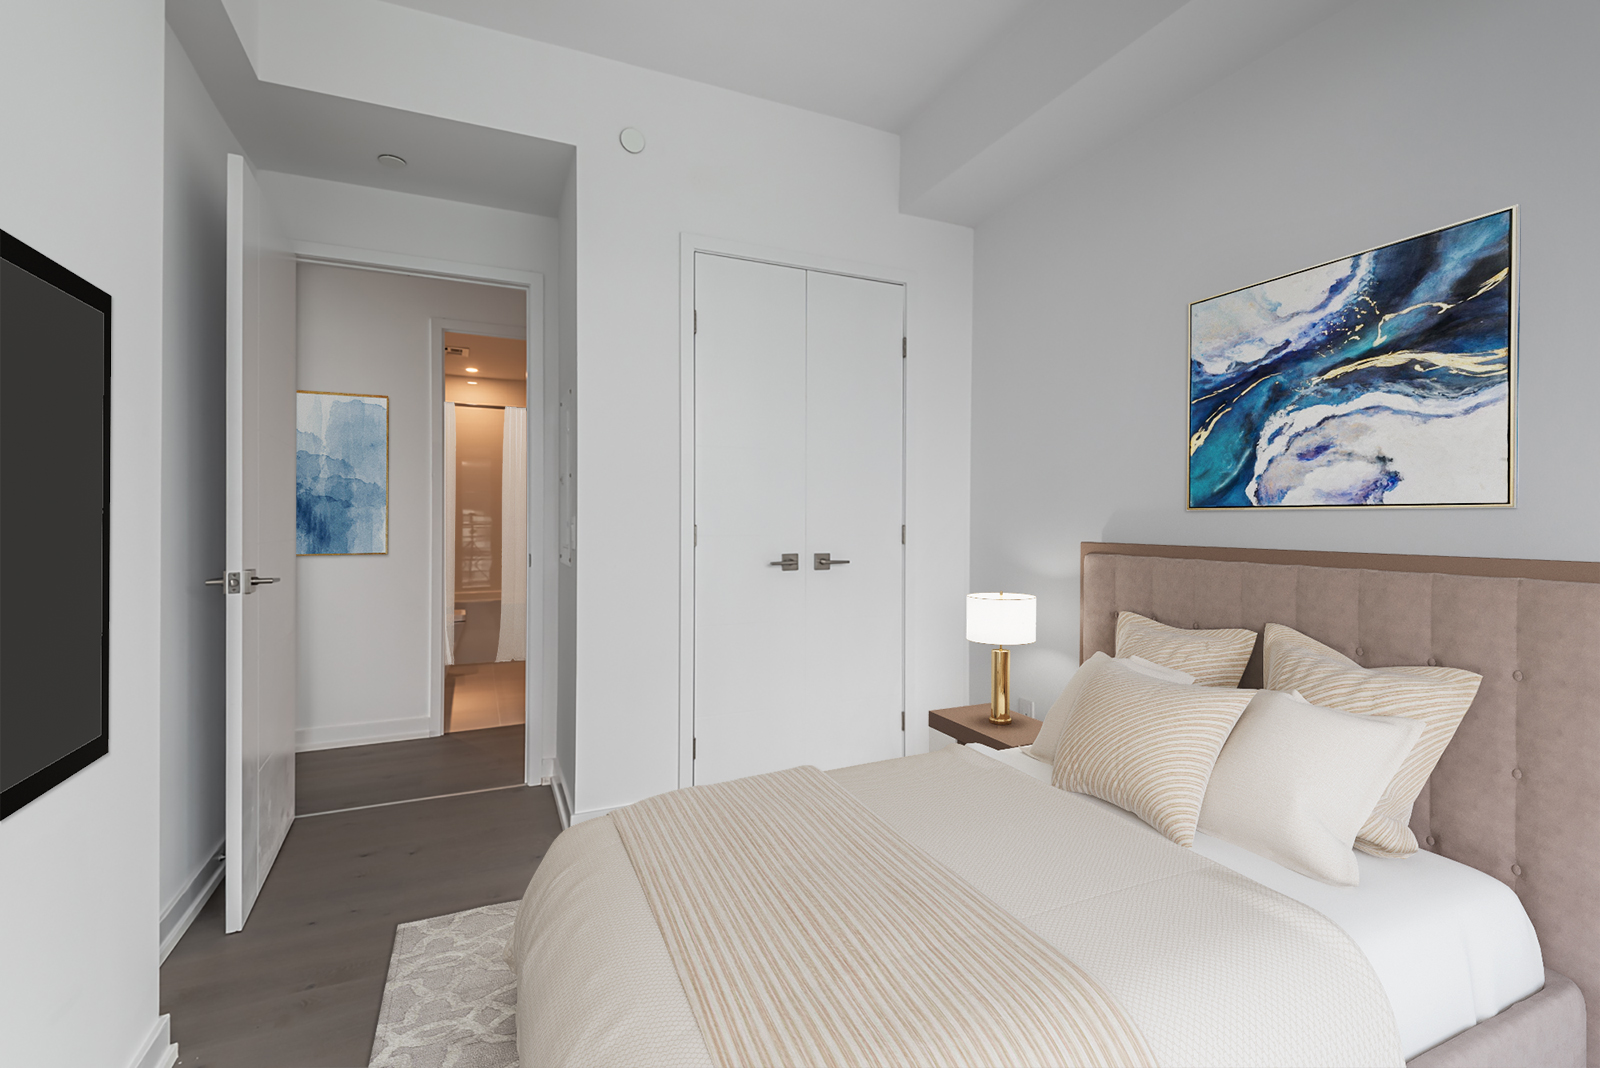 3D-rendered bed and paintings in second bedroom of 488 University Ave Unit 3410.